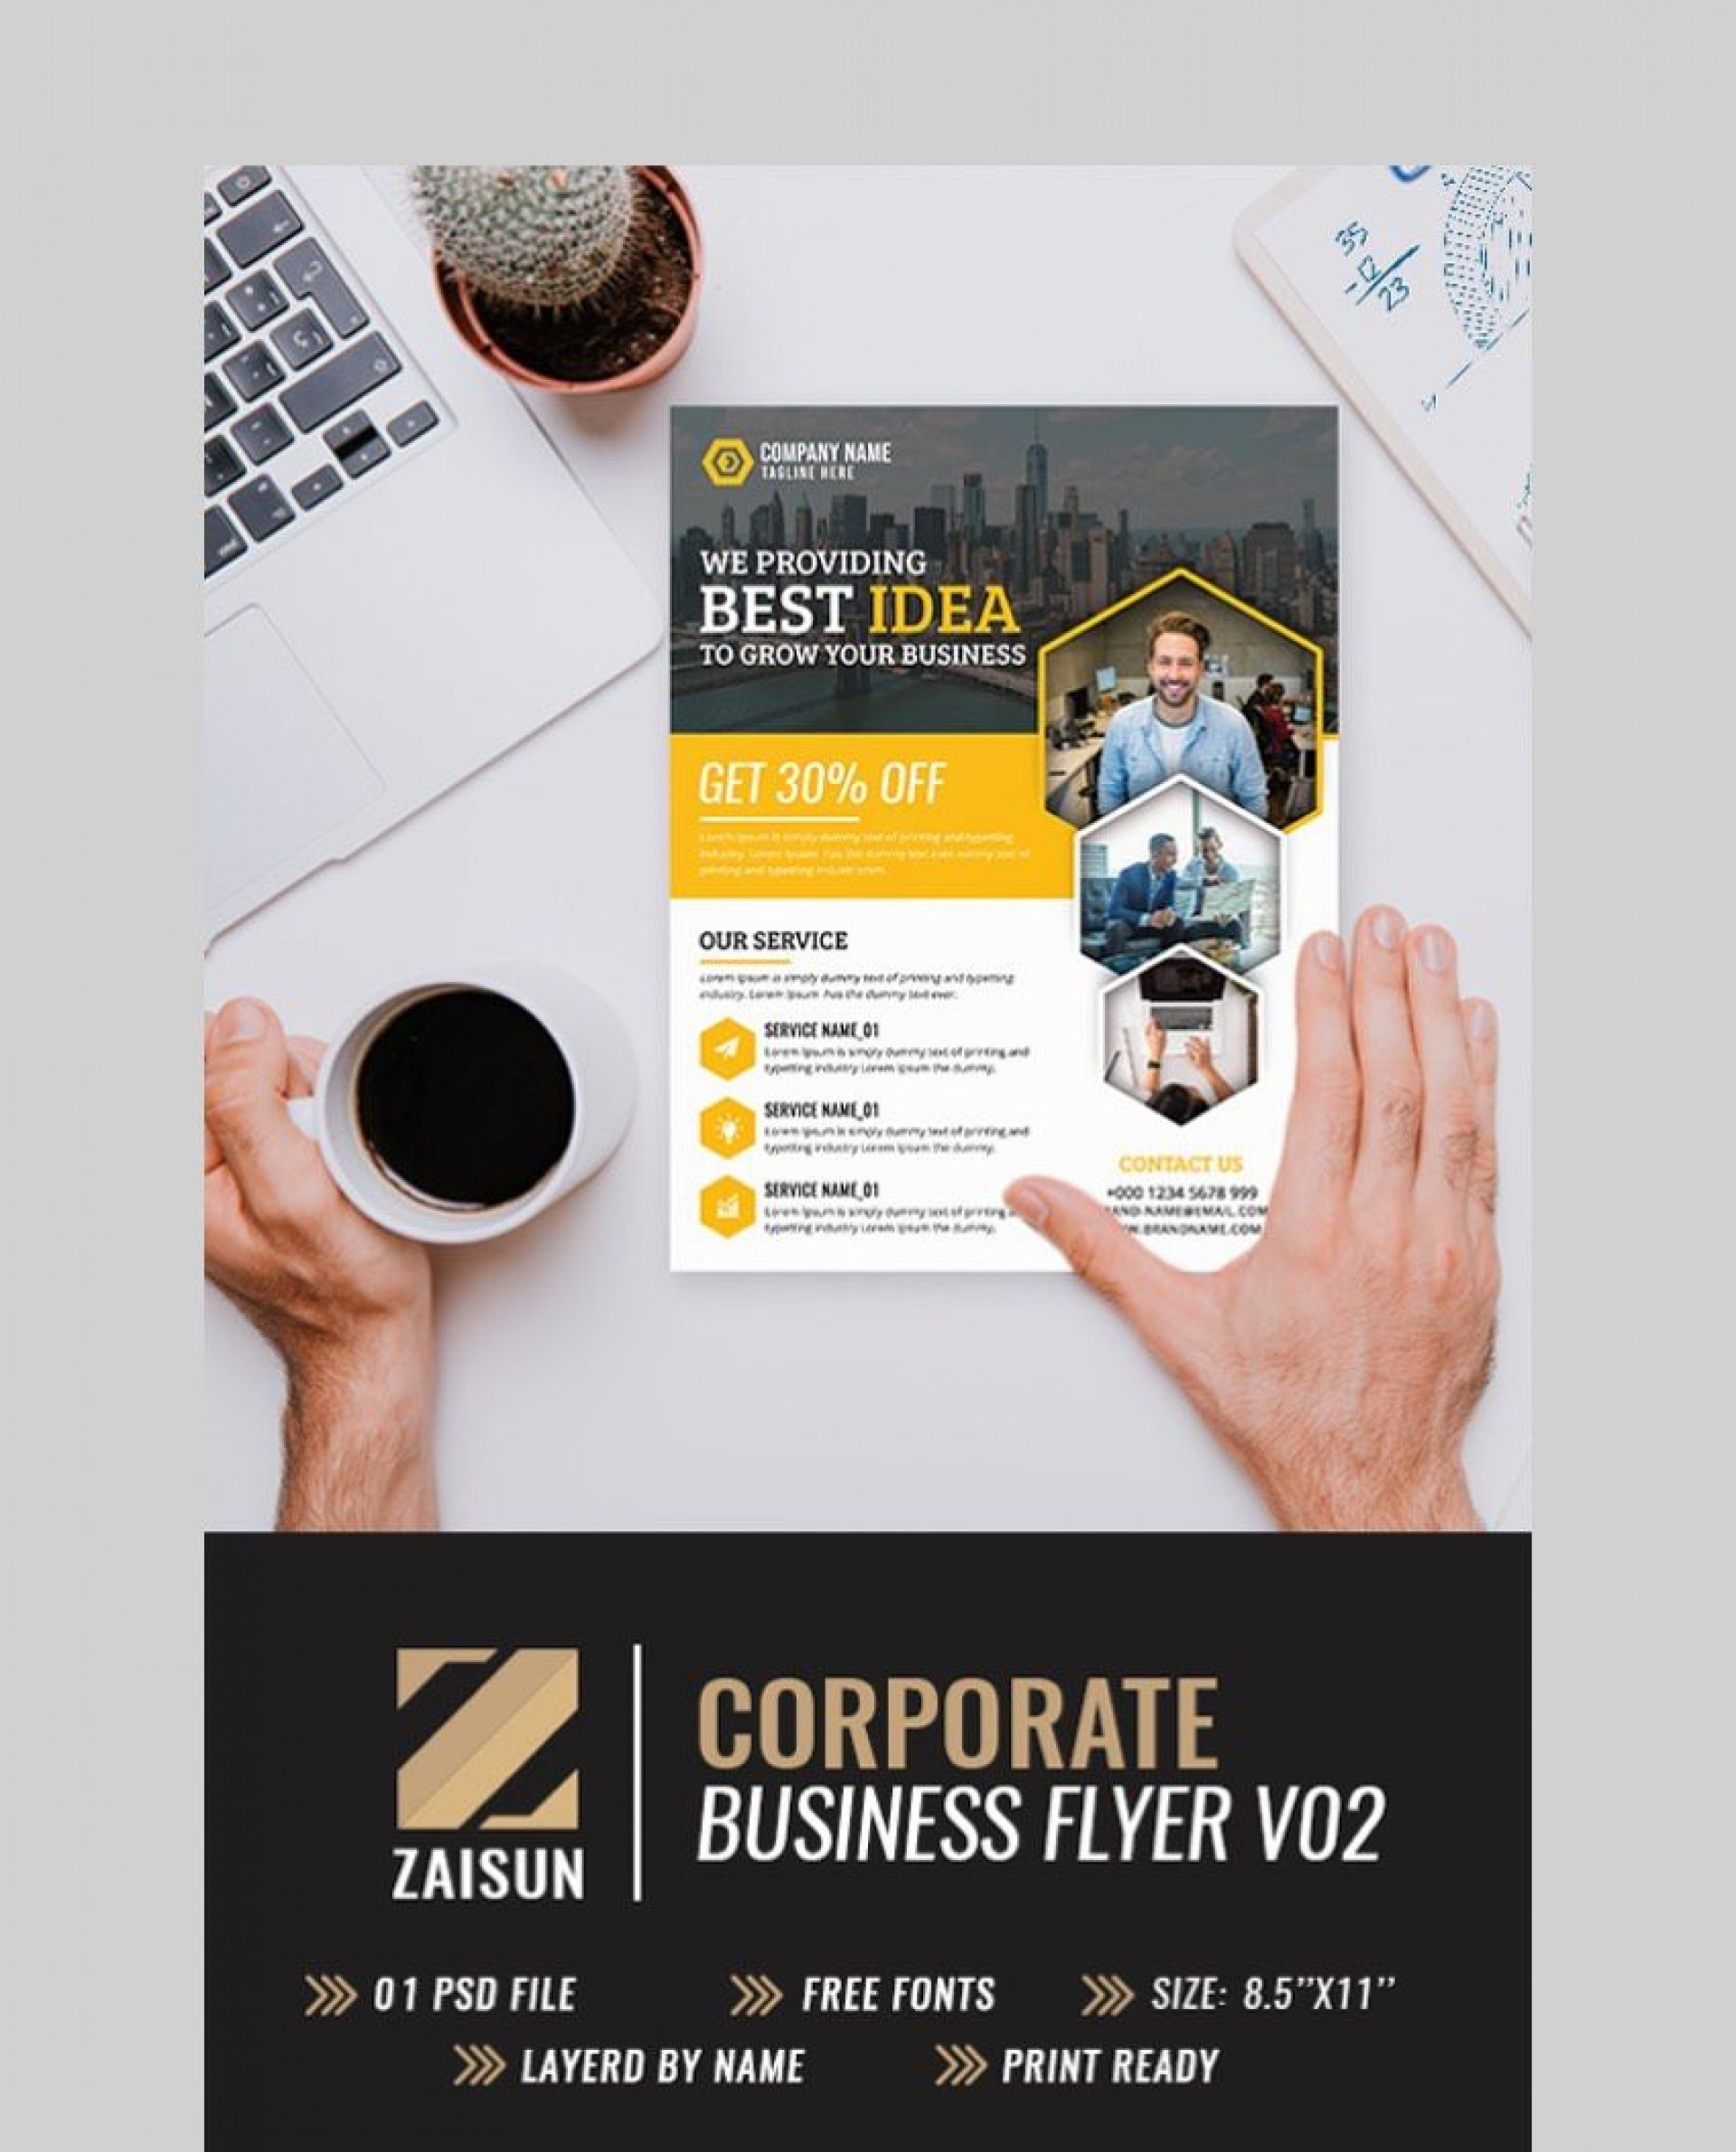 007 Simple Free Flyer Design Template High Def  Templates Online Download Psd1920